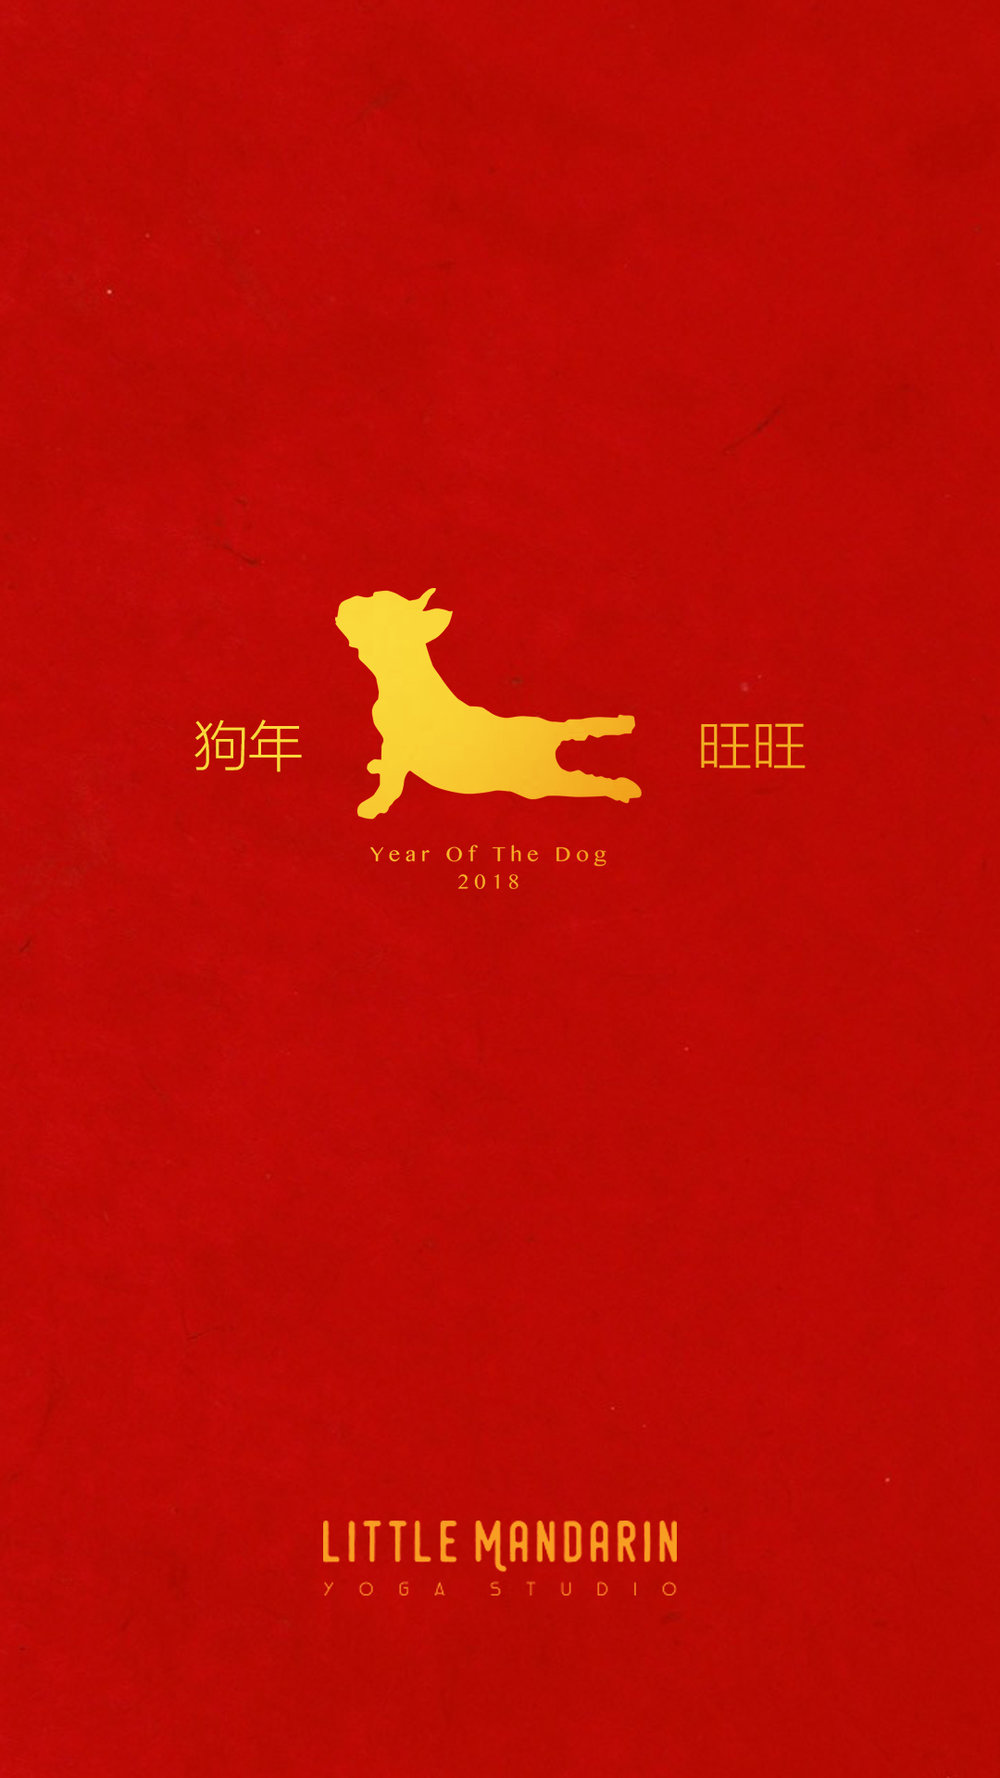 IG story size dog year red.jpg